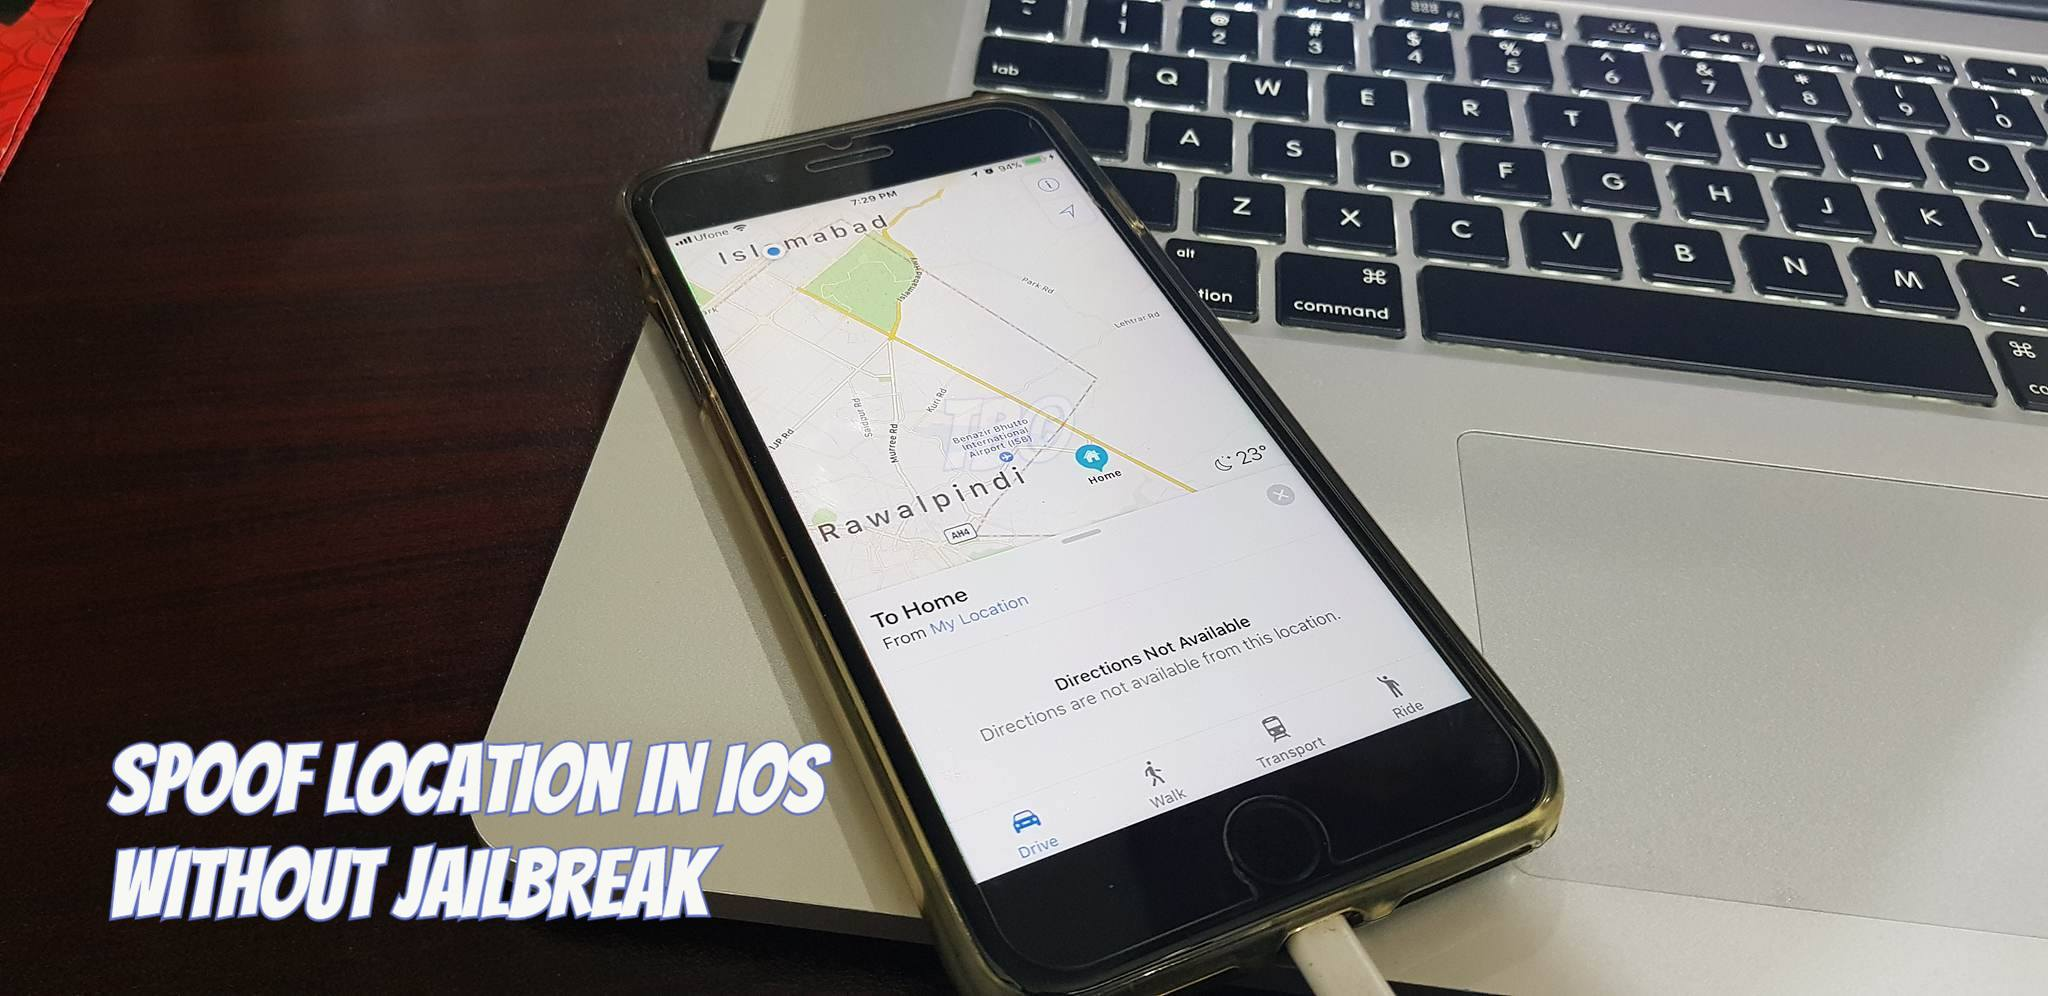 Spoof Location In iOS Without Jailbreak - How To